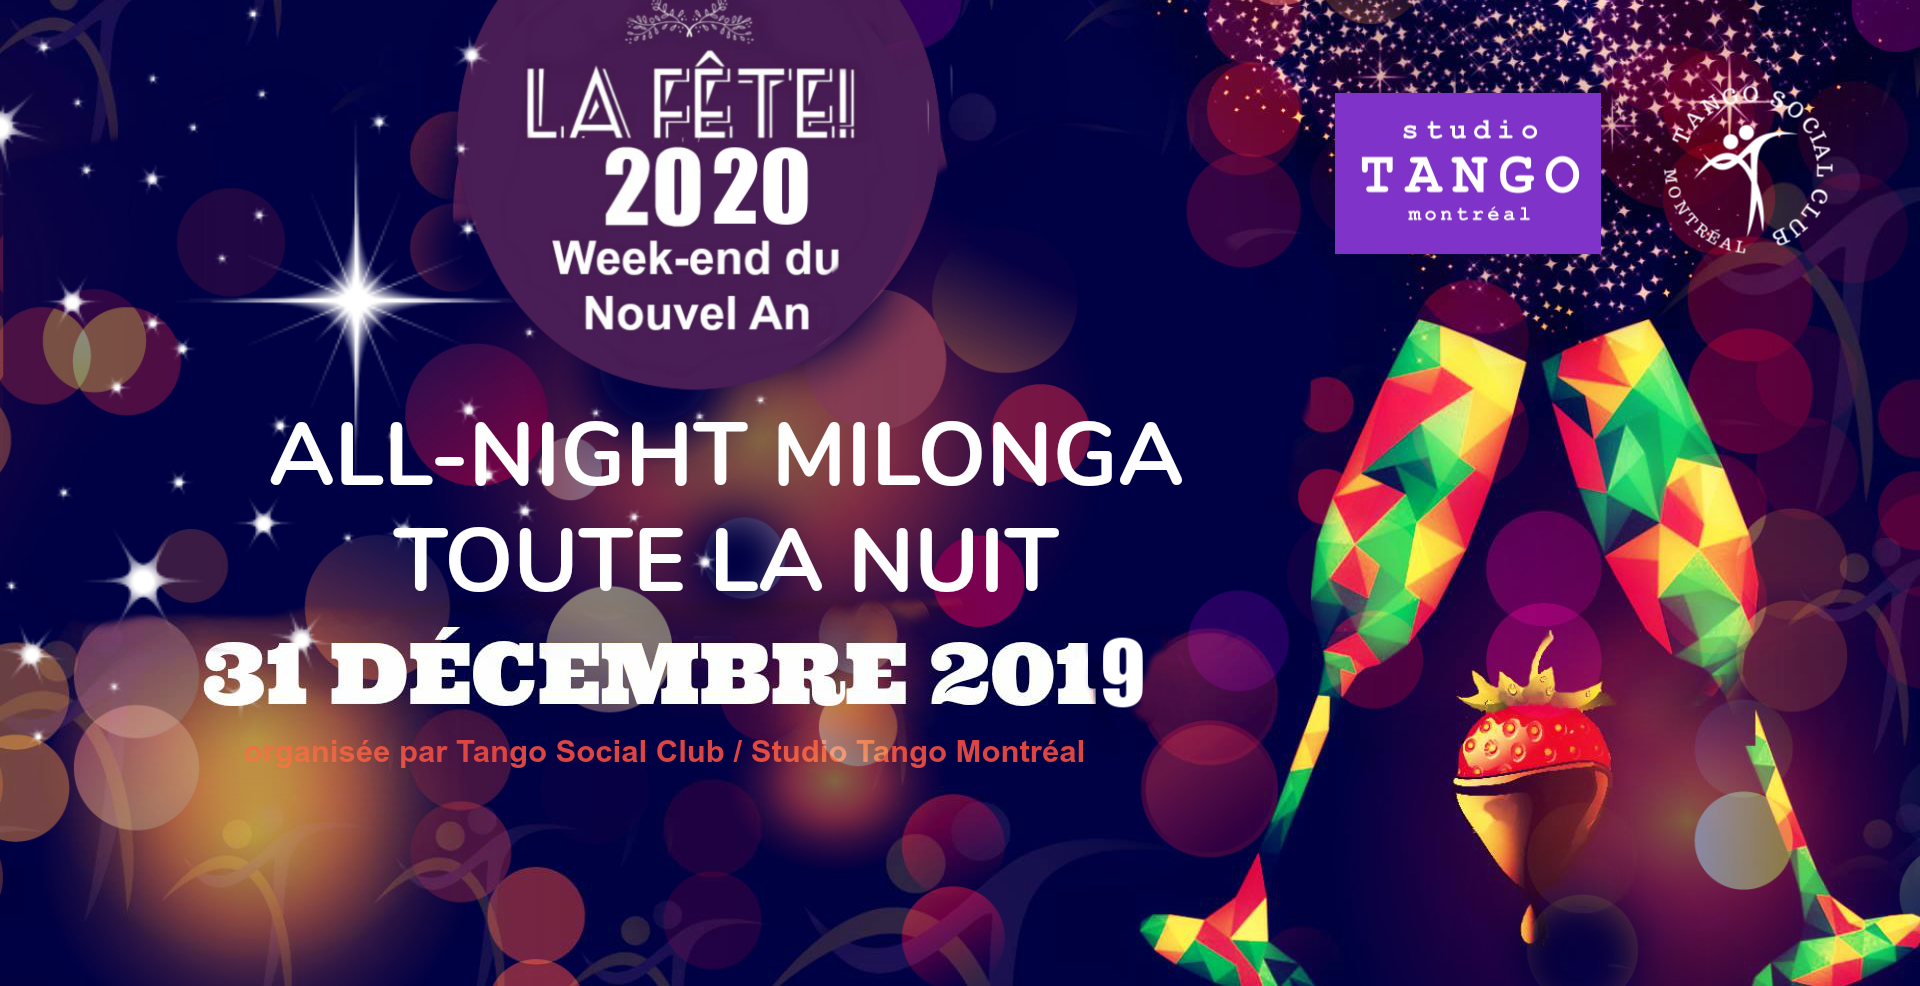 New Year's Eve All-Nighter - Tuesday, Dec 31, 9:00 pm until the wee hours!Same fab duo of dj's as last year and year before: Francis ''Pancho'' Cloutier (Montreal) & Milton ''El Gallo'' Azevedo (Boston), bubbly, chocolate, plus a late night snack-buffet to keep you dancing all-night long. Tickets in advance: 30$At the door: 35$